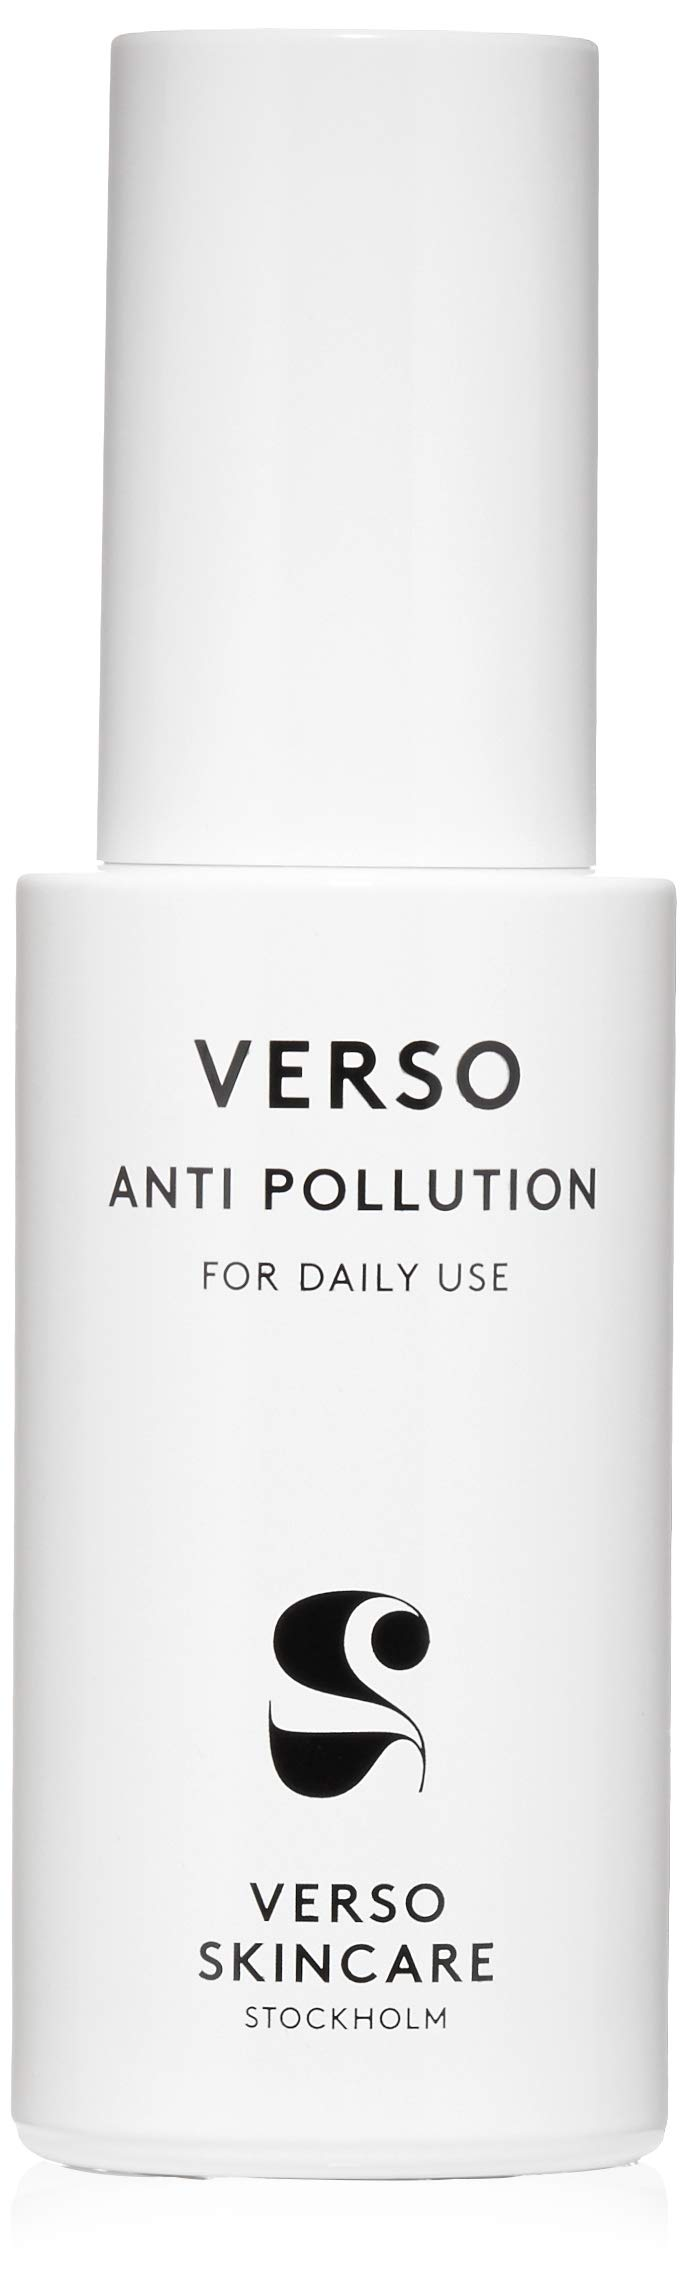 Verso Skincare Anti Pollution Mist for Women, 1.69 Ounce